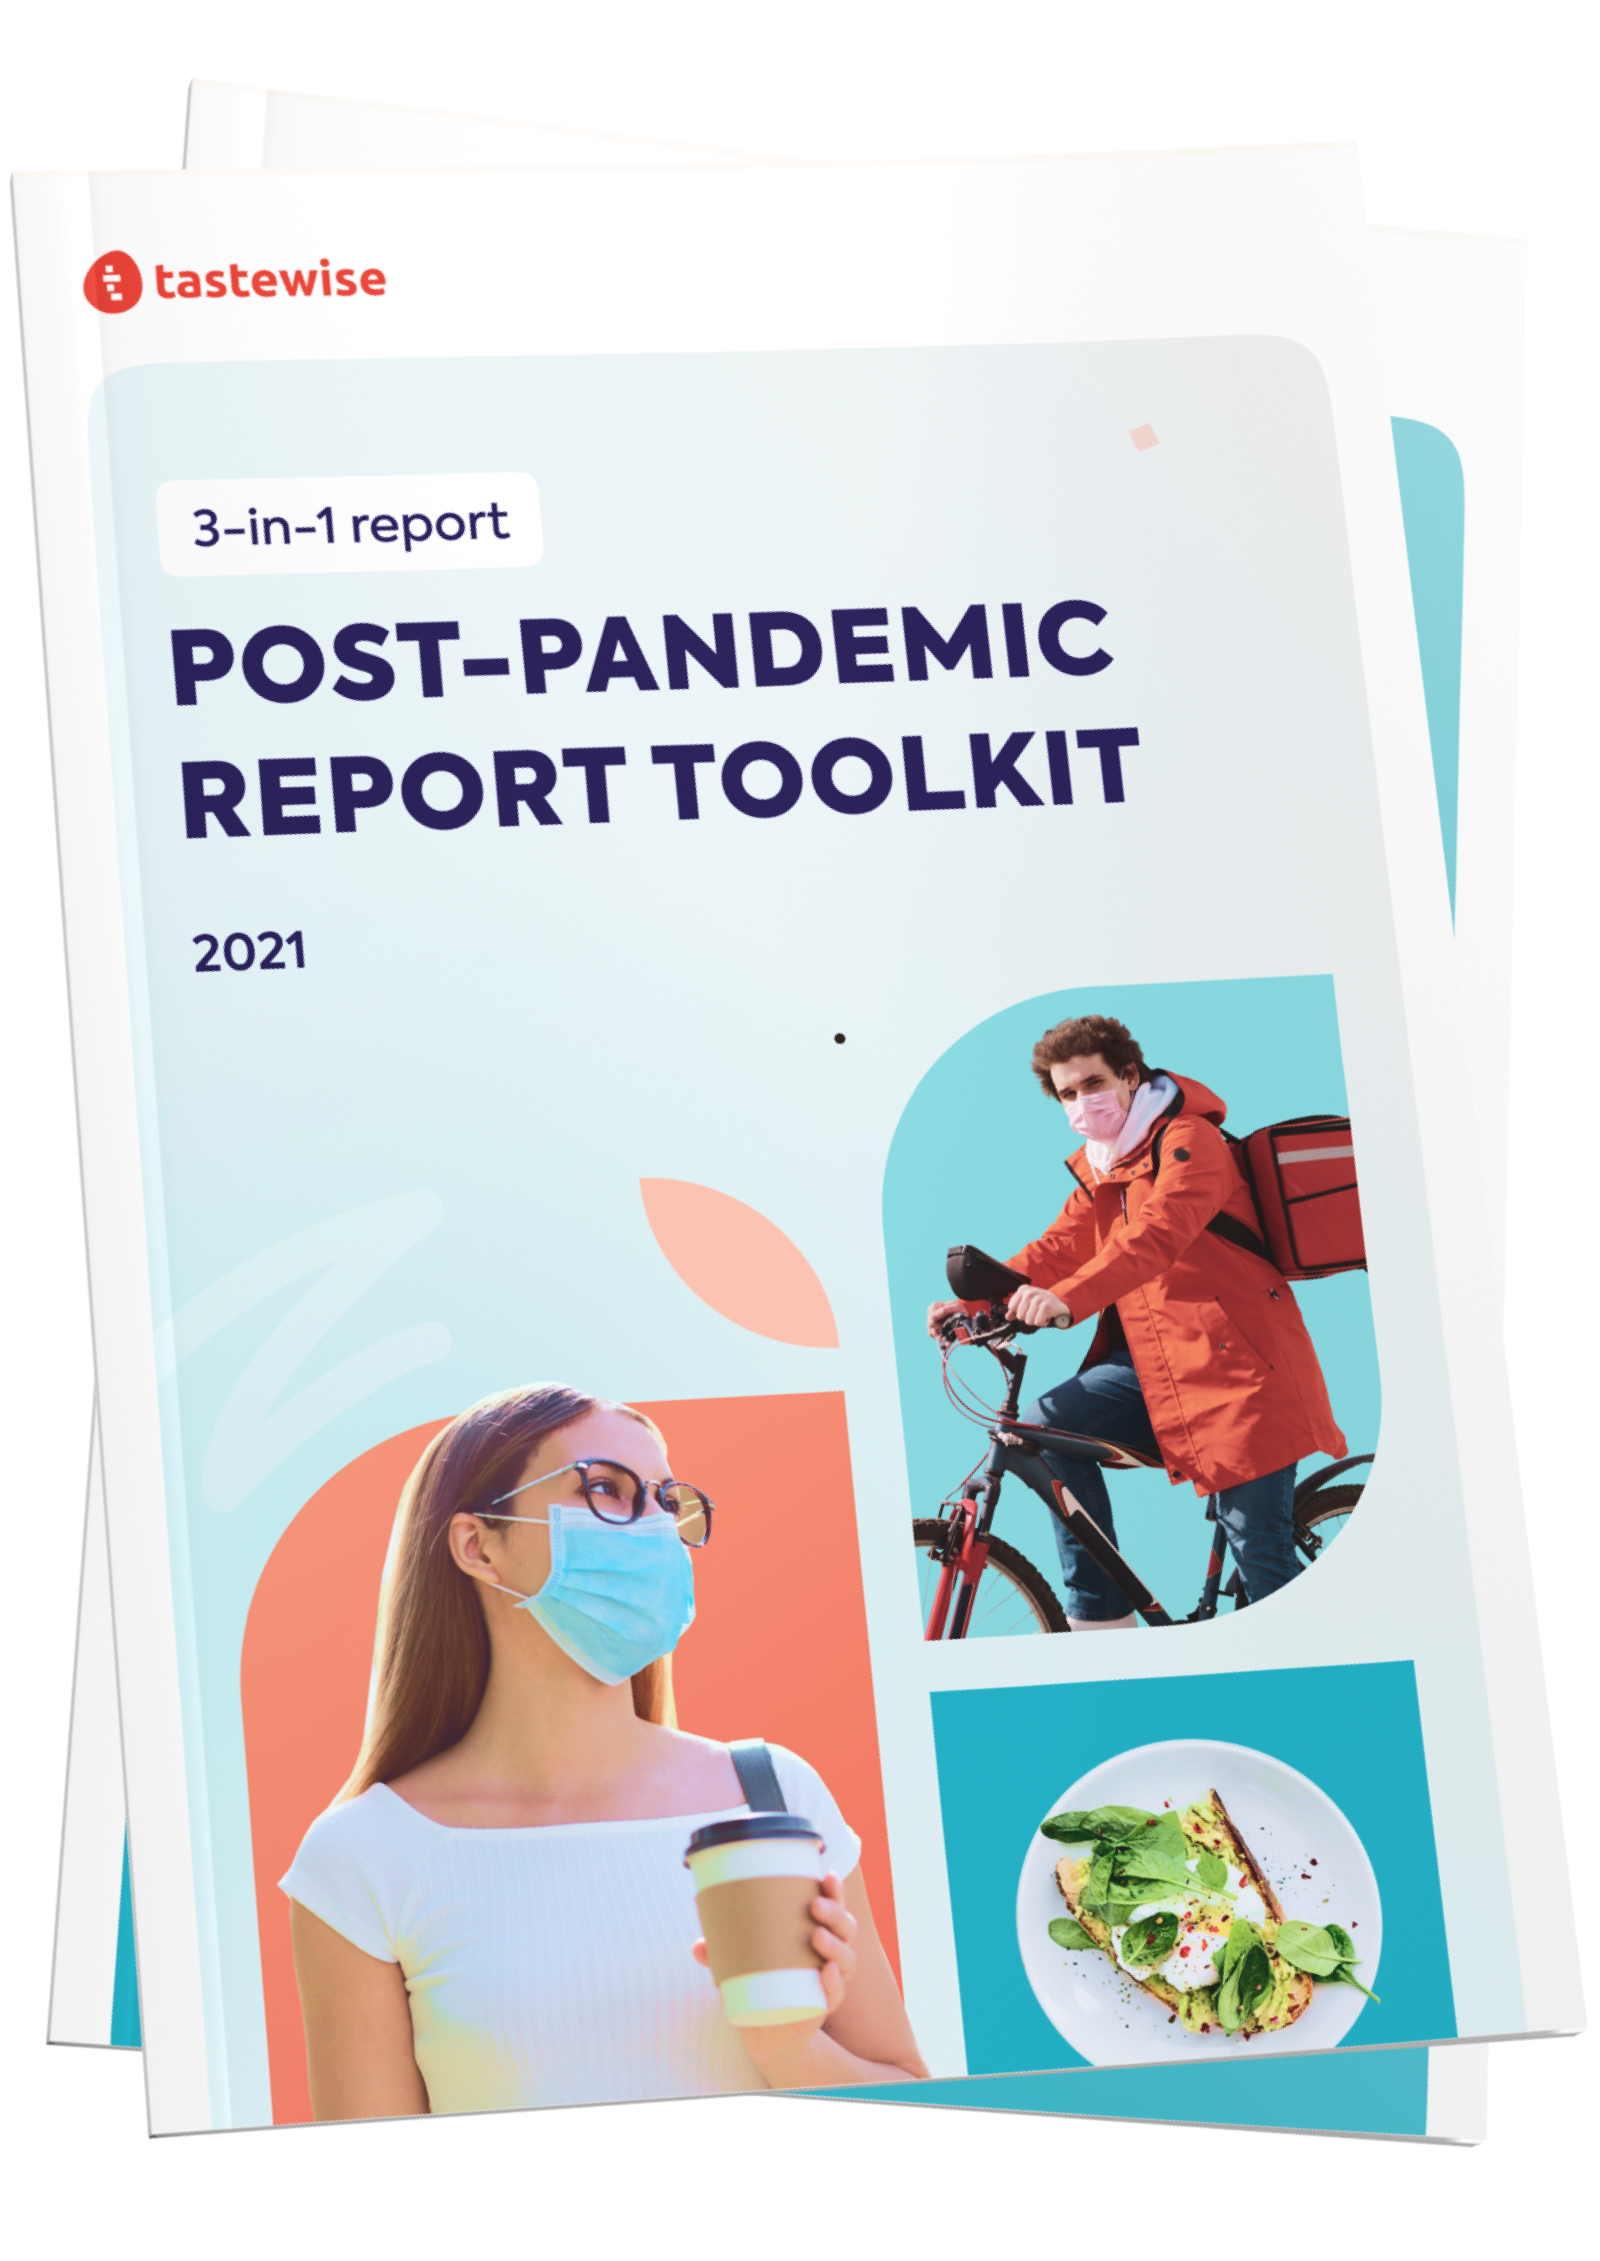 3-in-1 Post-Pandemic Toolkit: Coming May 12th